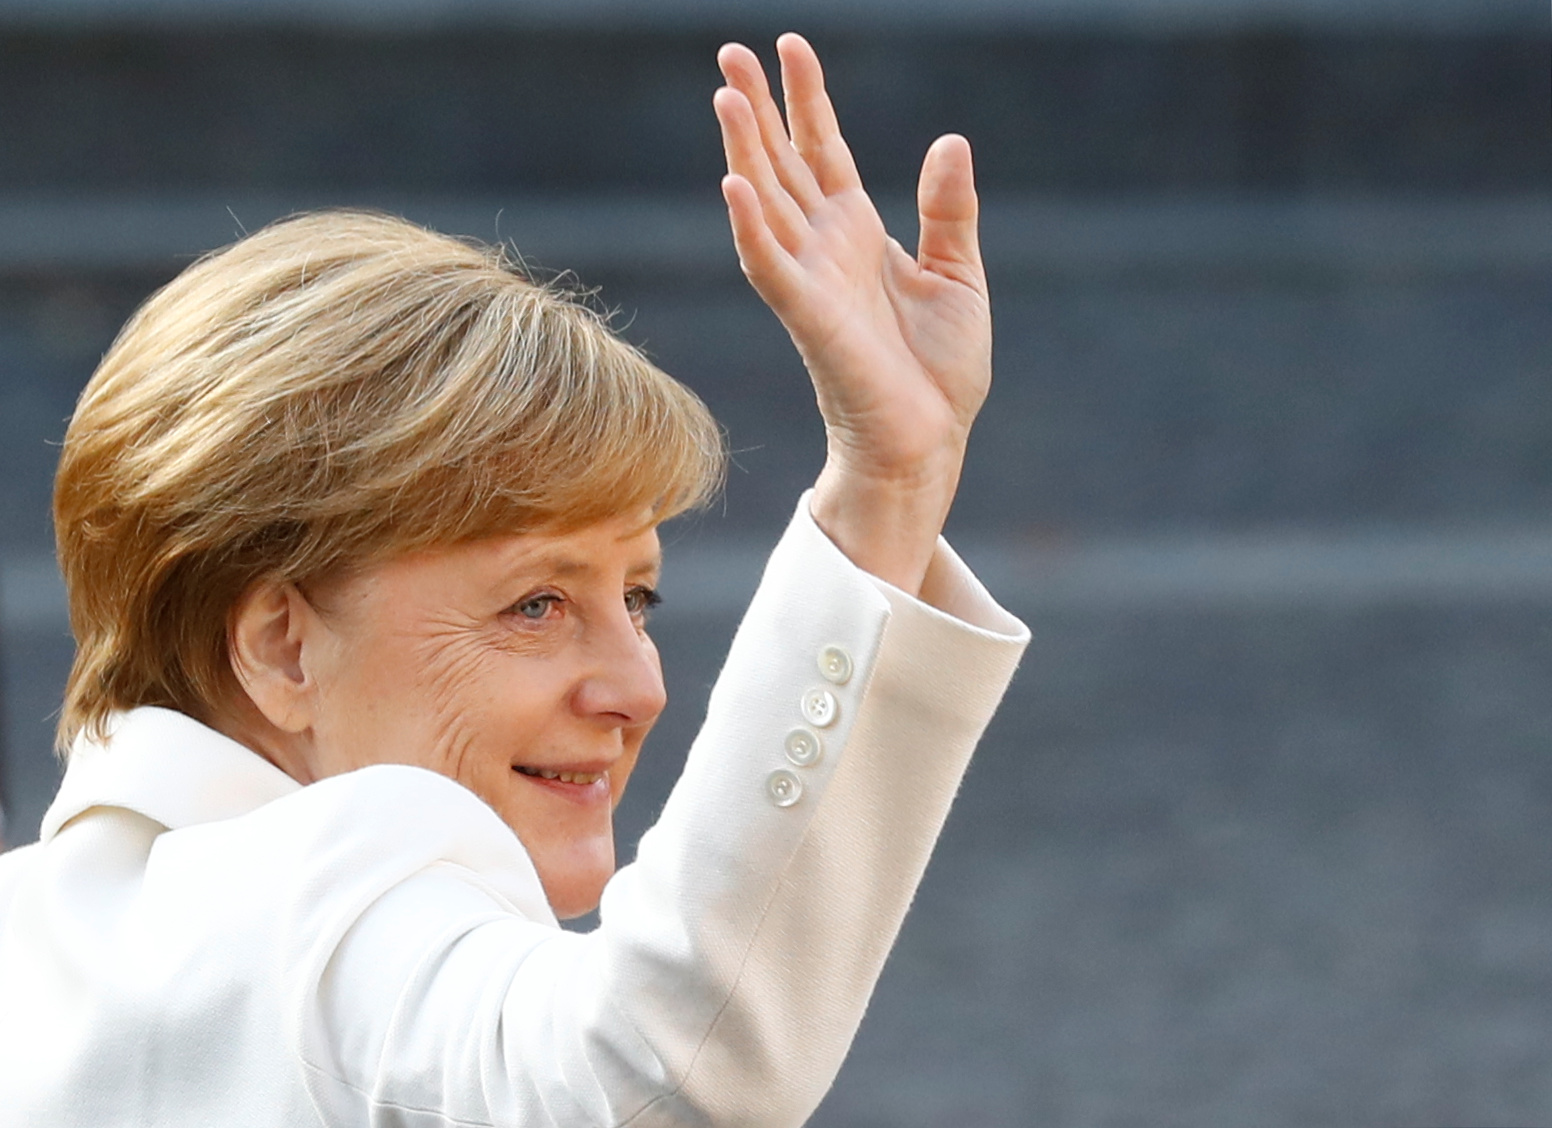 Angela Merkel will not seek re-election as German chancellor